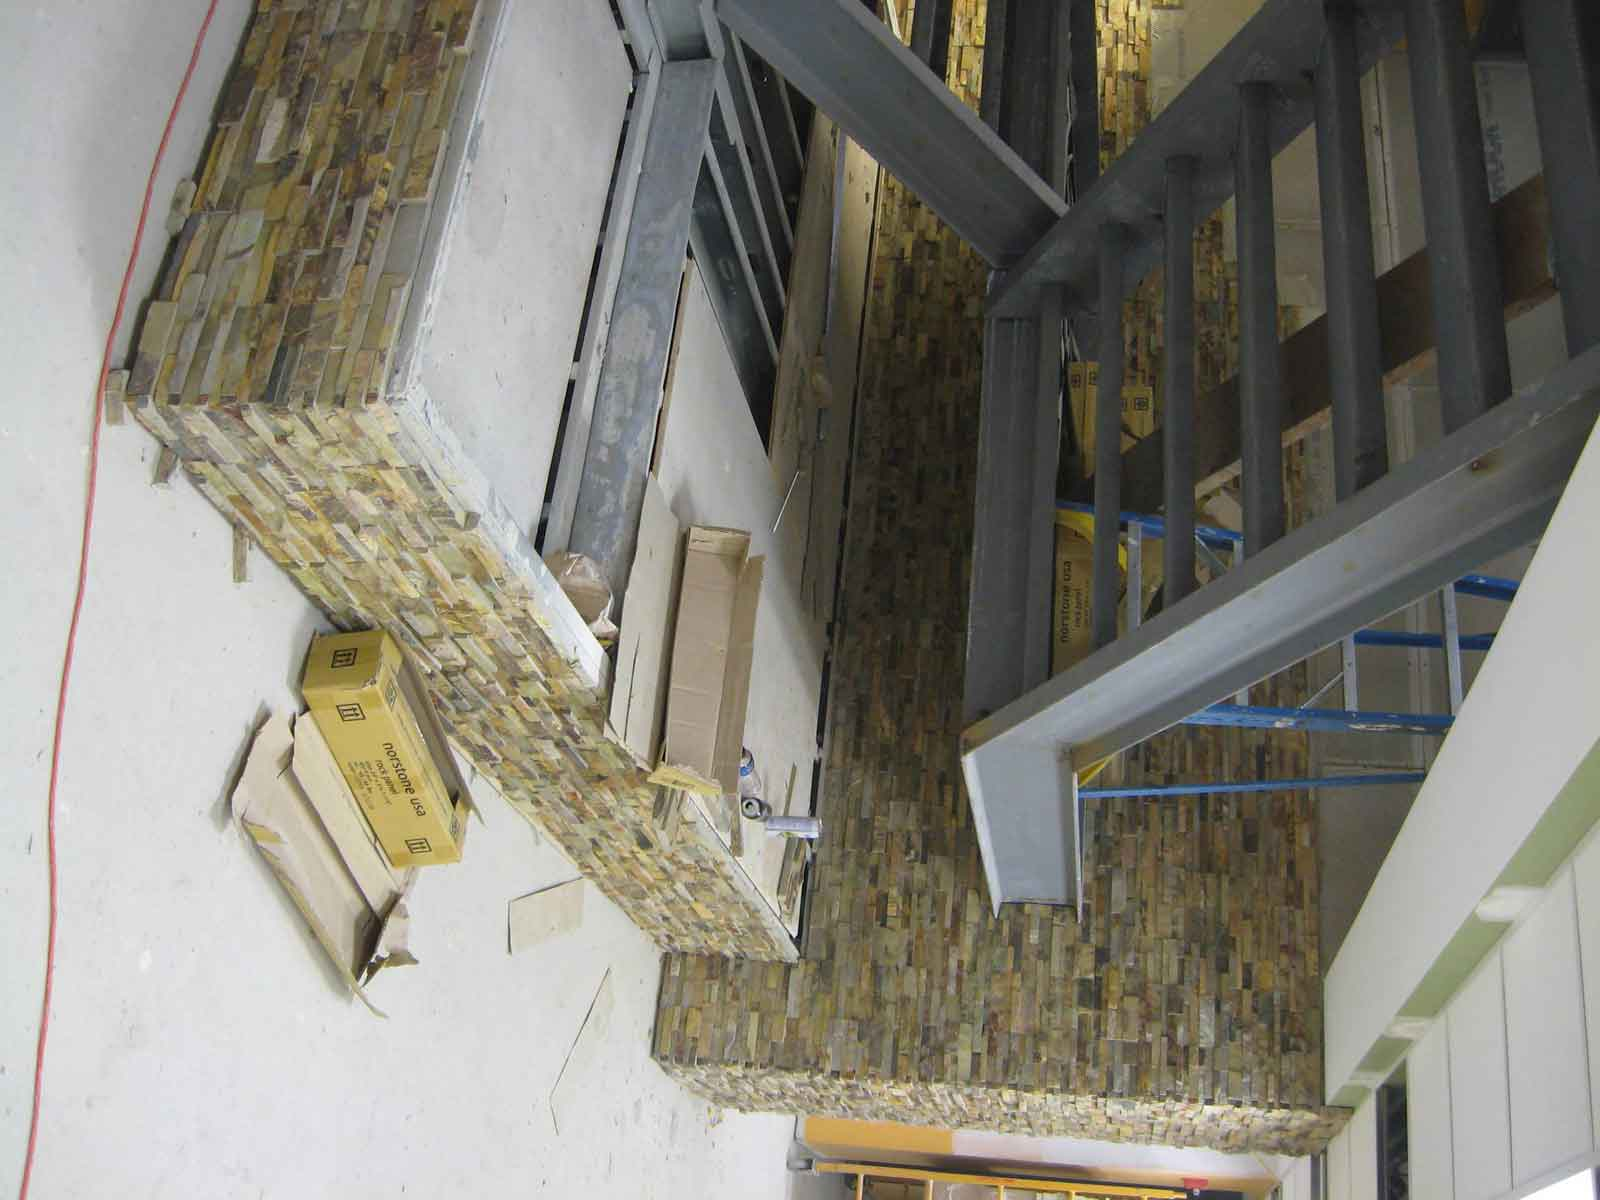 Progress Installation Shot of Norstone Ochre Rock Panels being installed on stairwell at healtchare facility in town of Boston Massachusetts